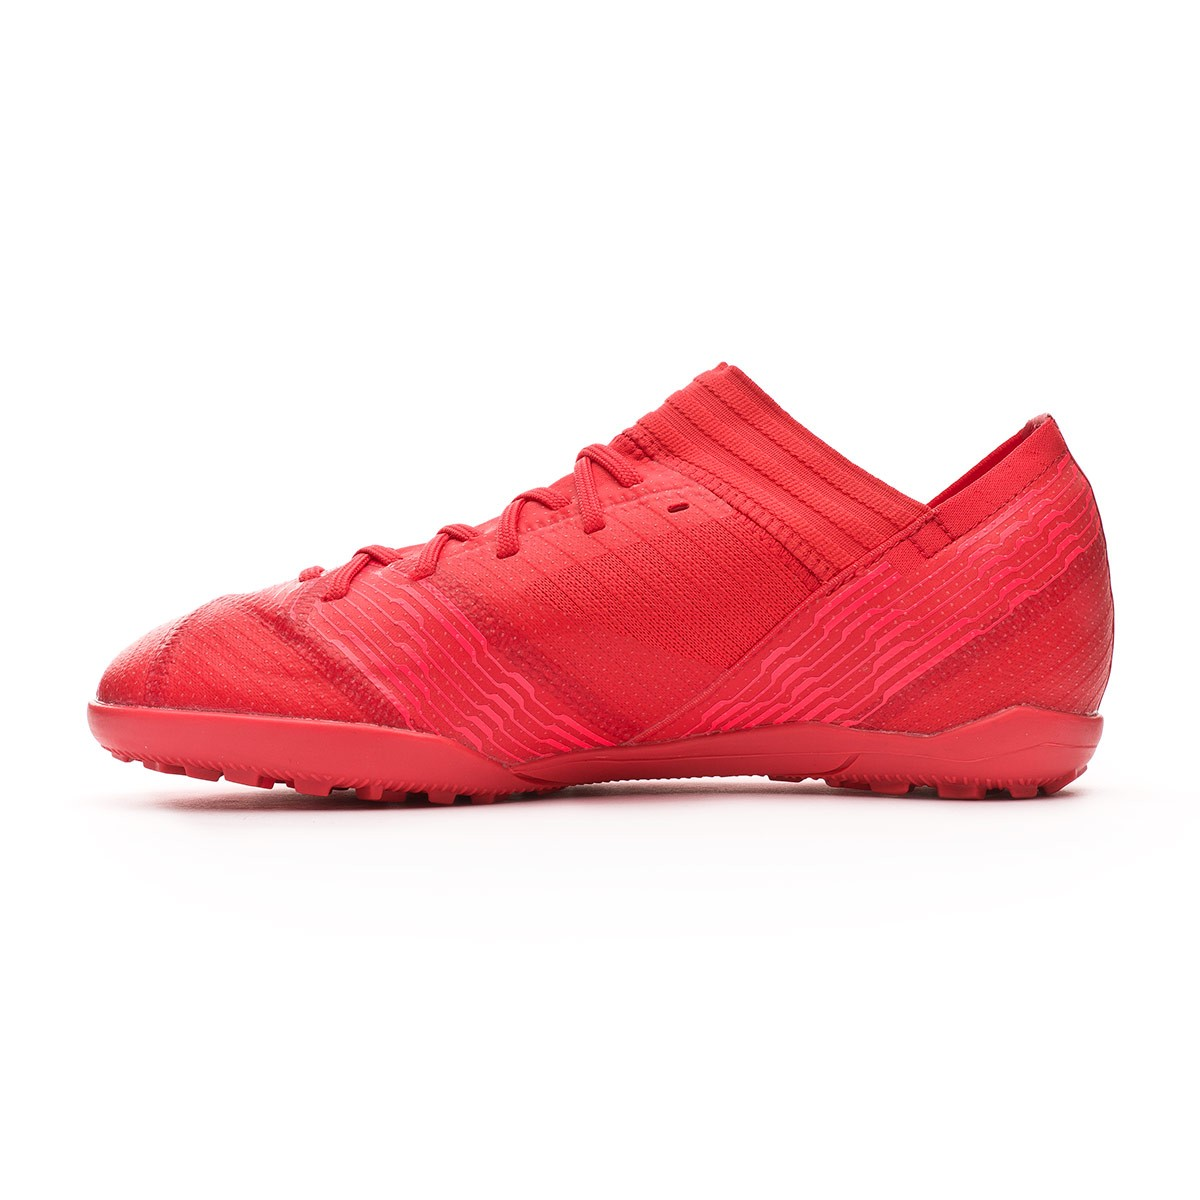 d45884633fa6 Football Boot adidas Kids Nemeziz Tango 17.3 Turf Real coral-Red zest -  Tienda de fútbol Fútbol Emotion